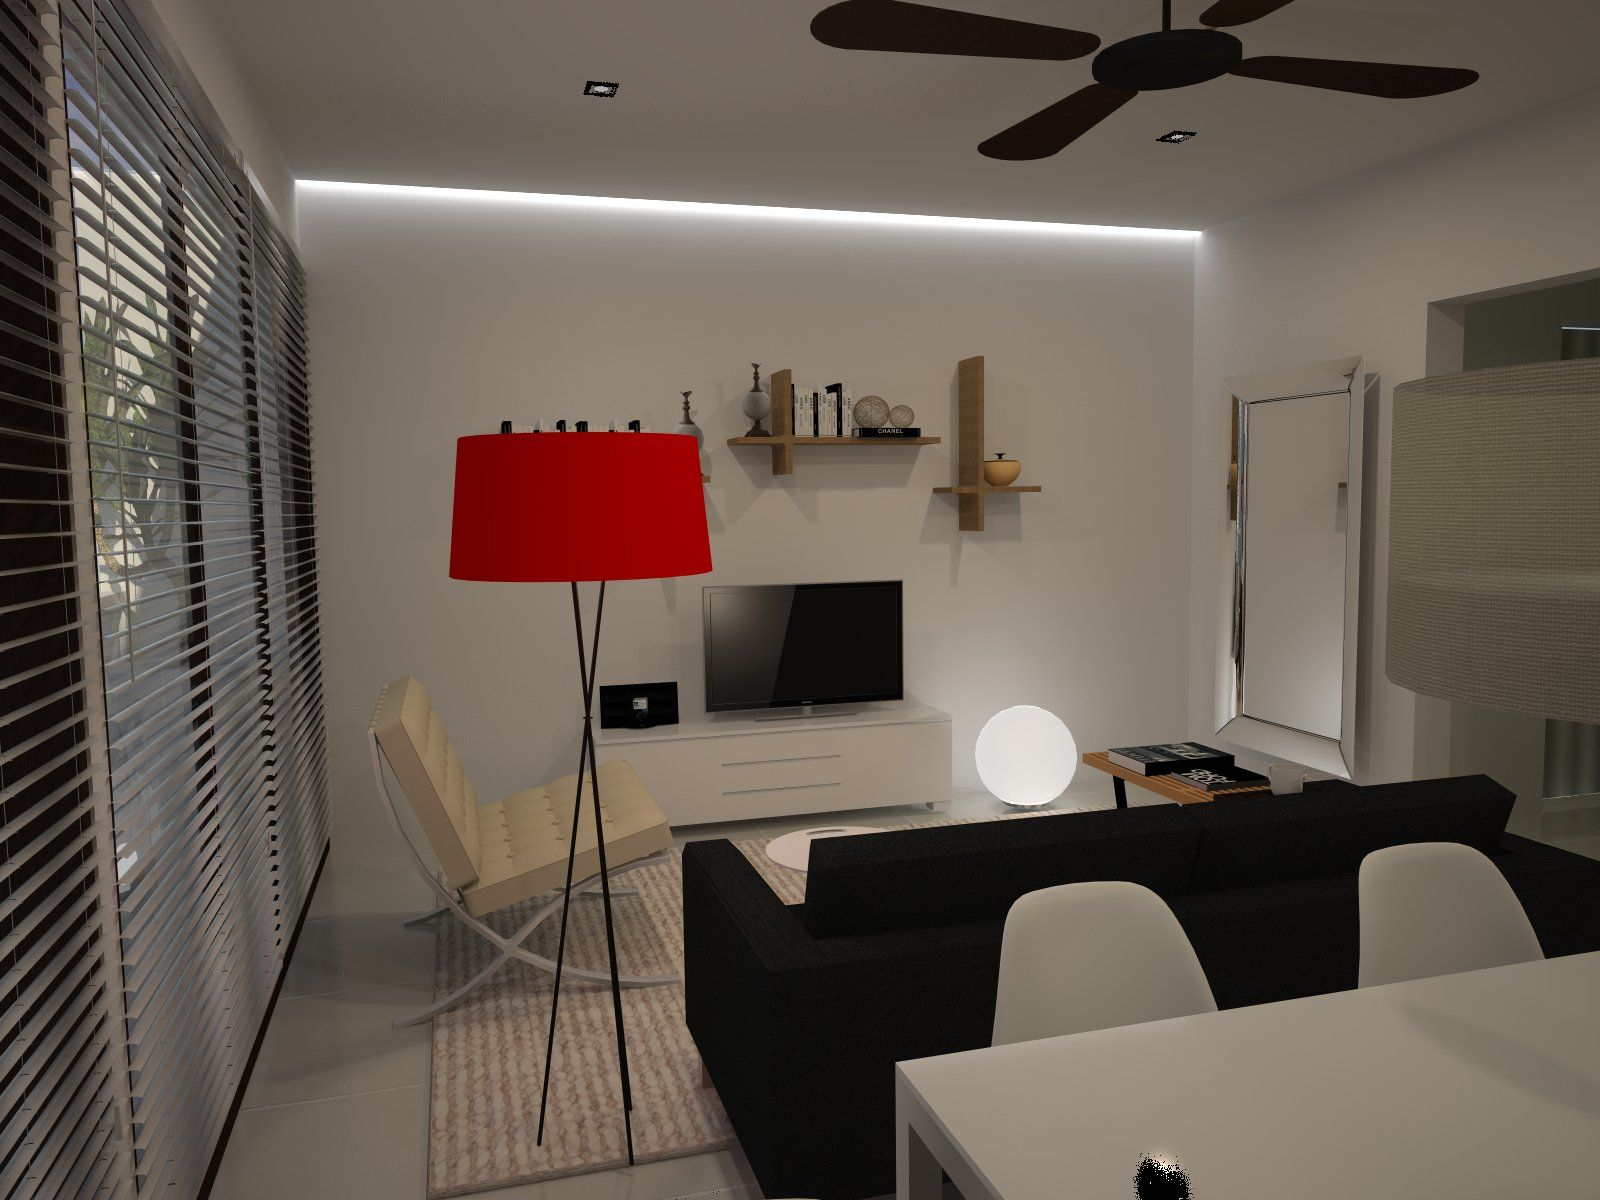 2 Bedroom Apartment Interior Design setia sky residences 2-bedroom apartment. interior design